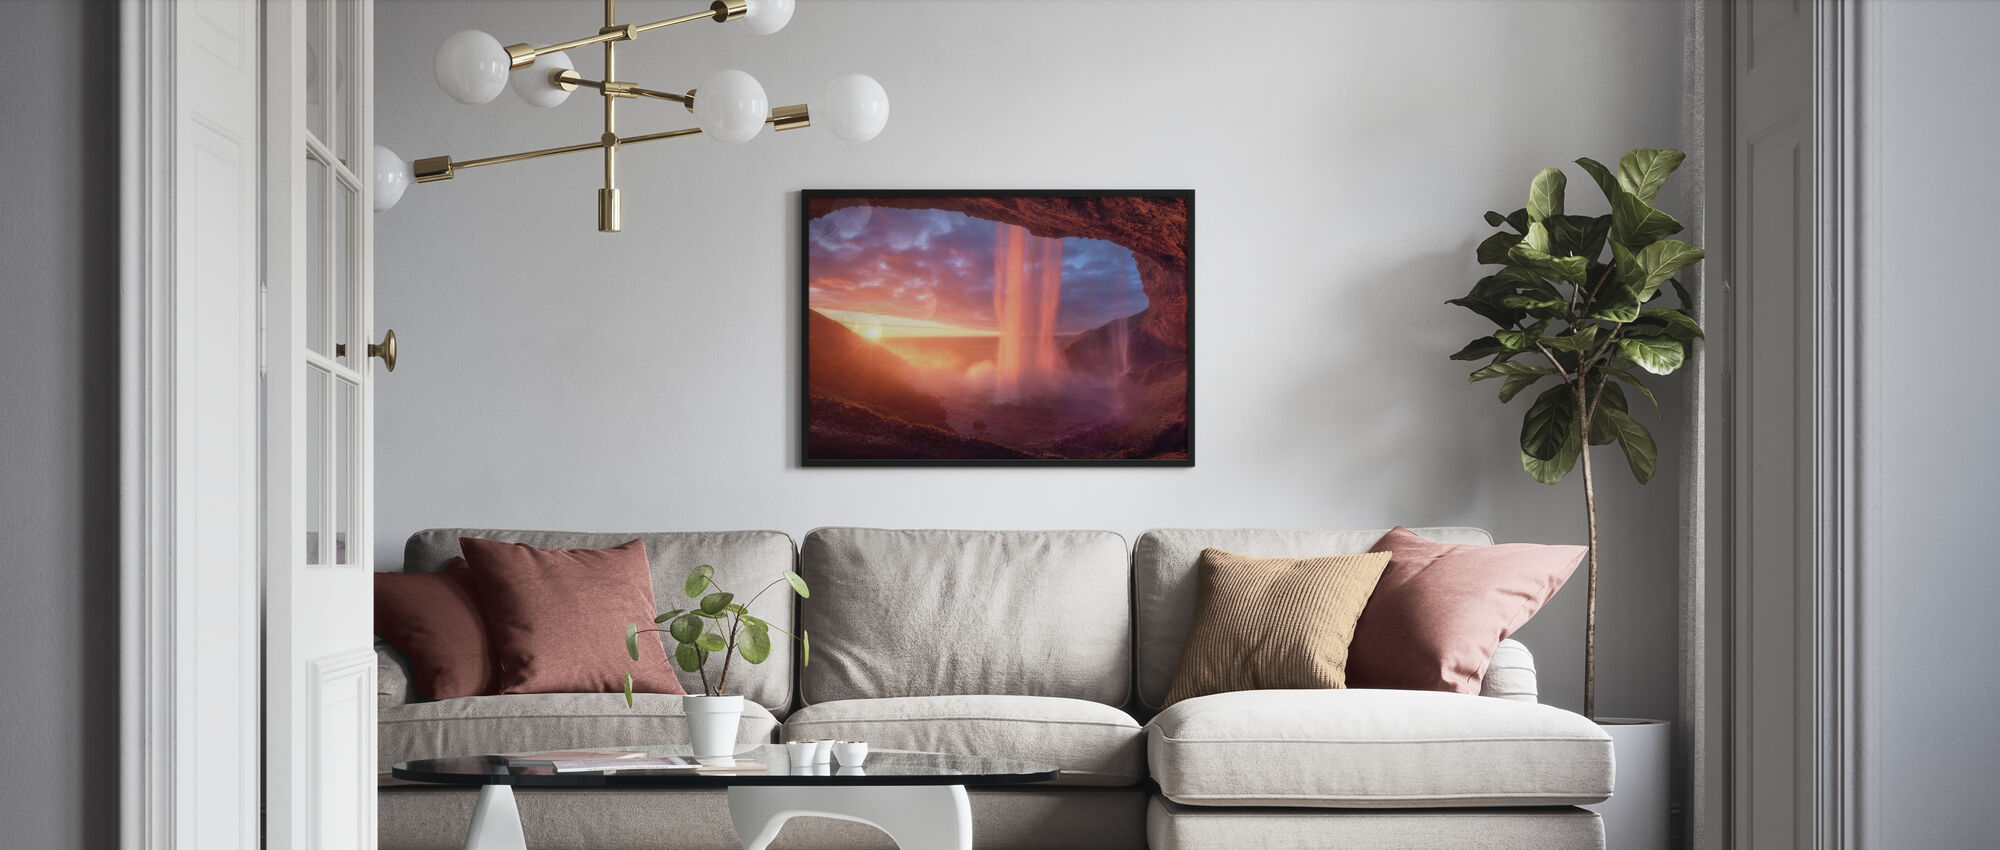 Wall of Flames - Framed print - Living Room